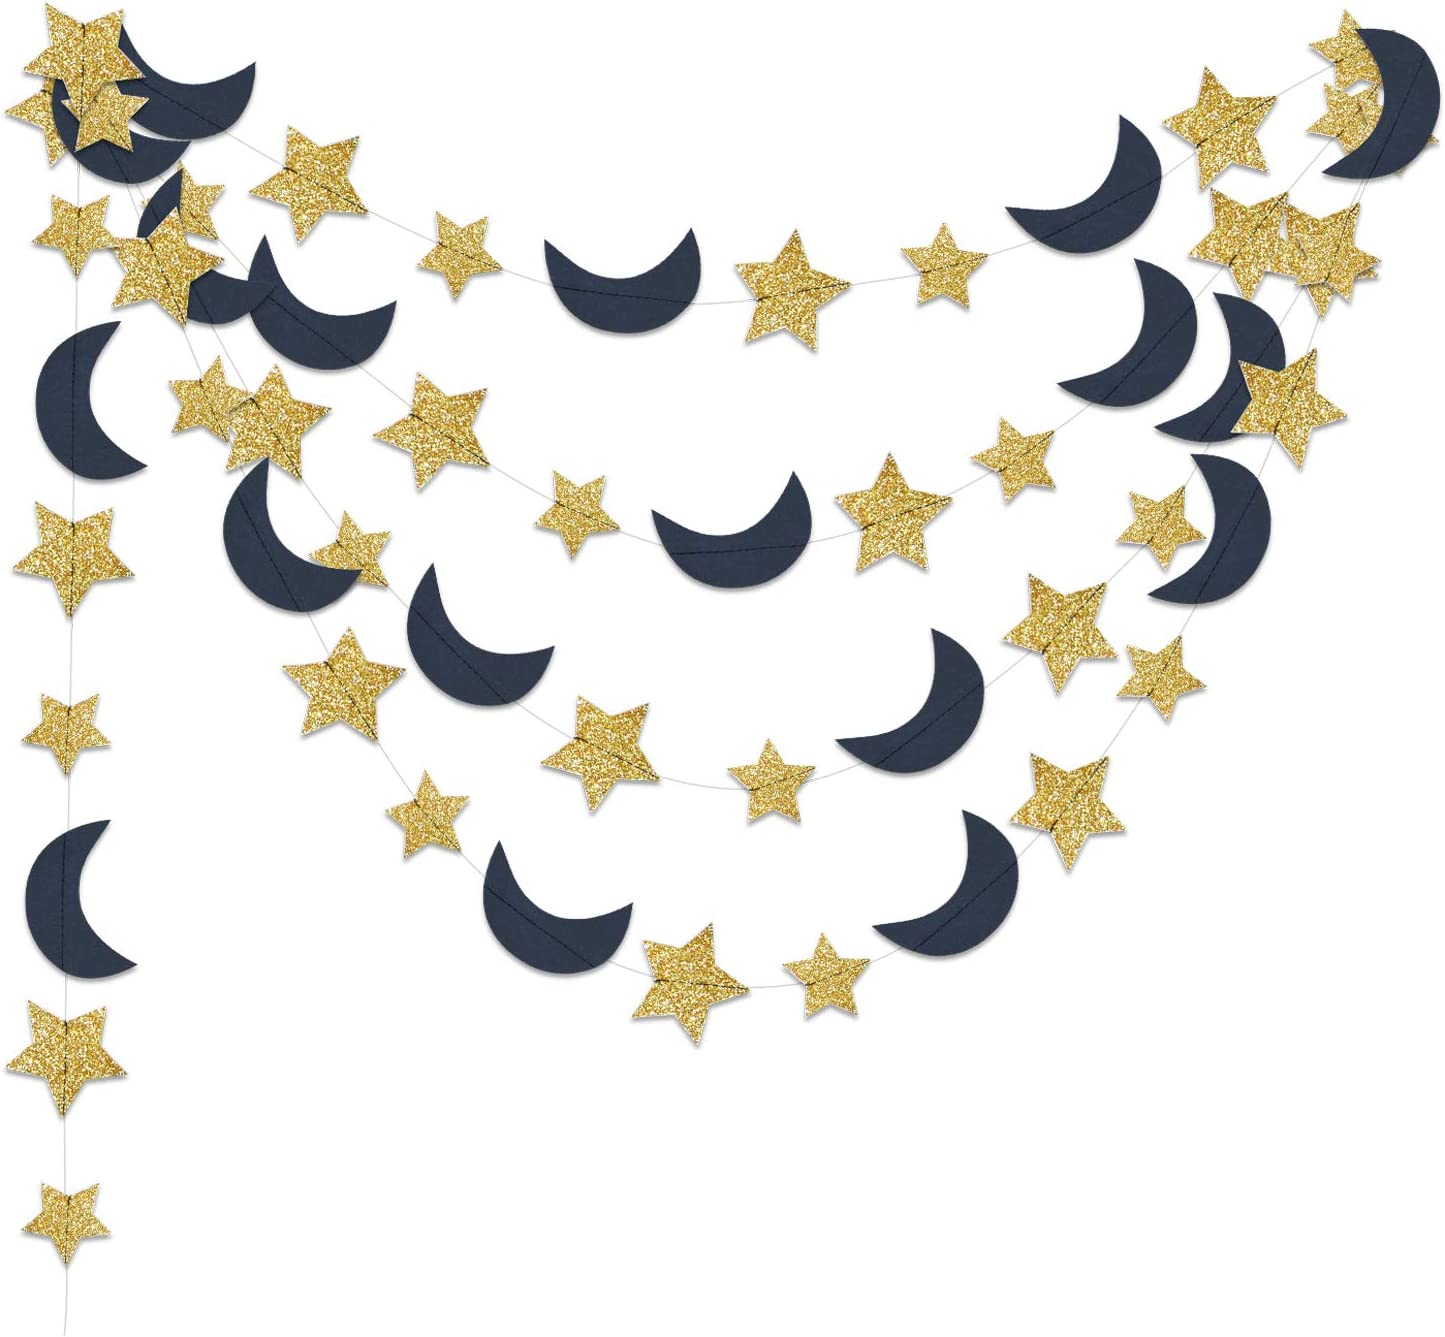 Furuix Outer Space Birthday Party Decorations Navy Gold 2pcs Moon and Star Garlands 1st Birthday Garland Love You to The Moon and Back Navy Blue Gold Moon Star Baby Shower Decorations (Navy Gold)